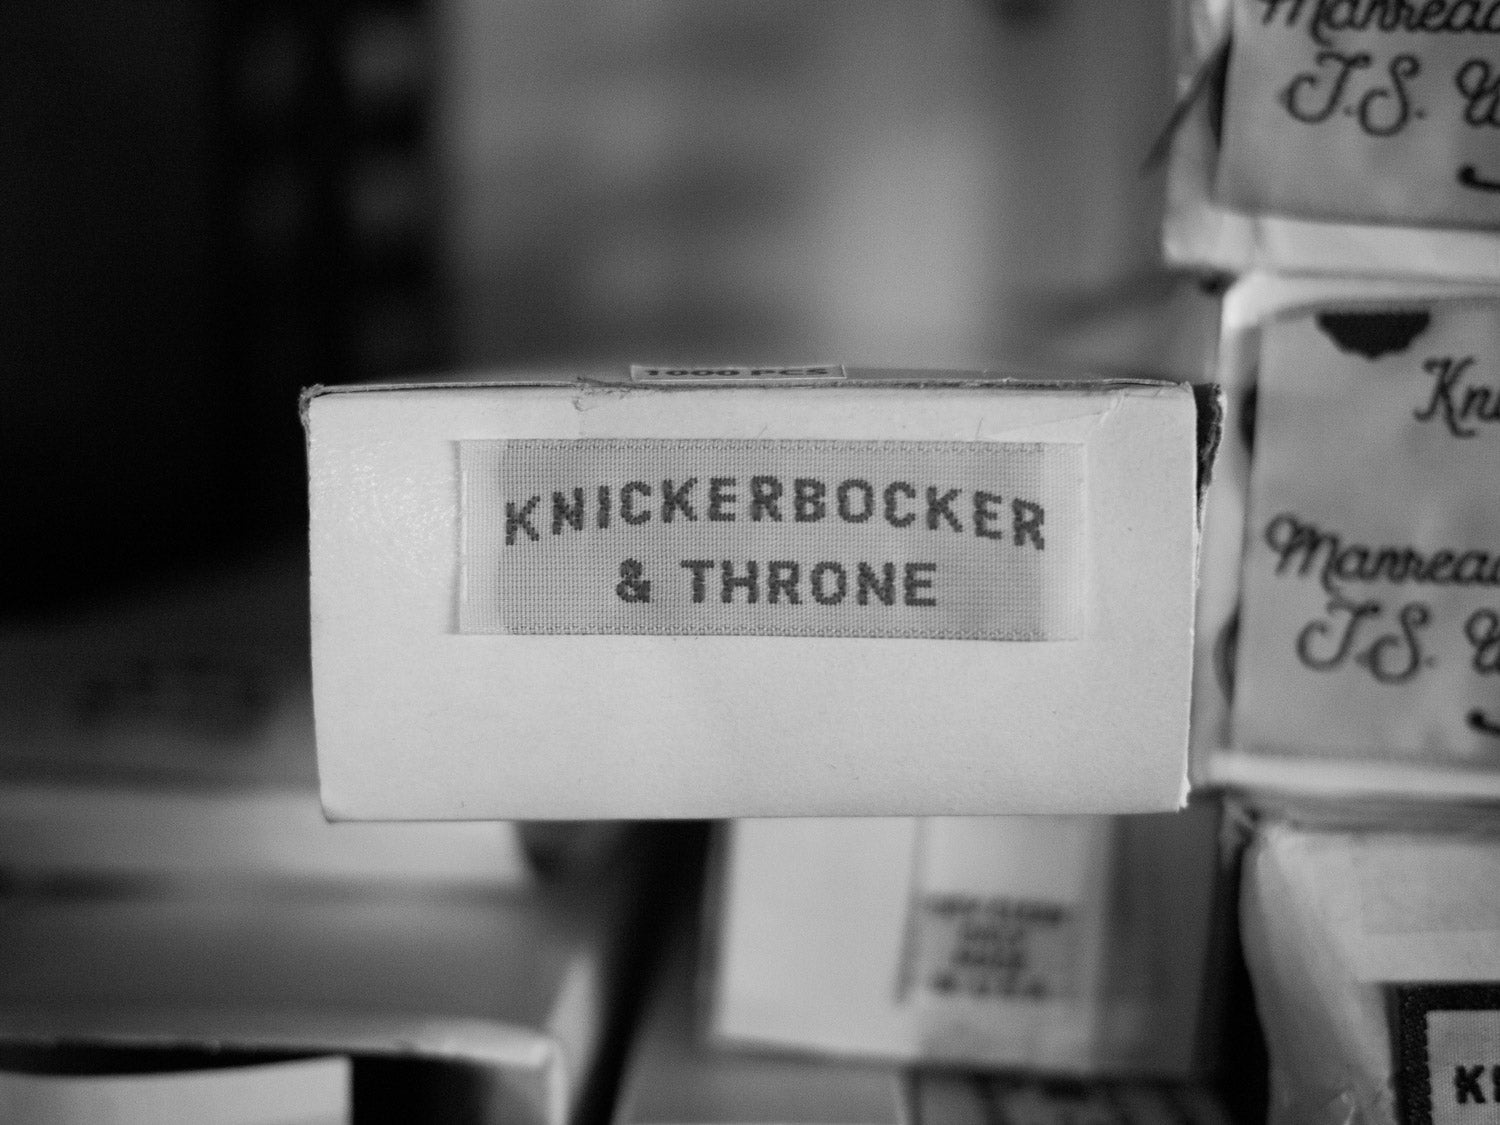 Throne x Knickerbocker 01